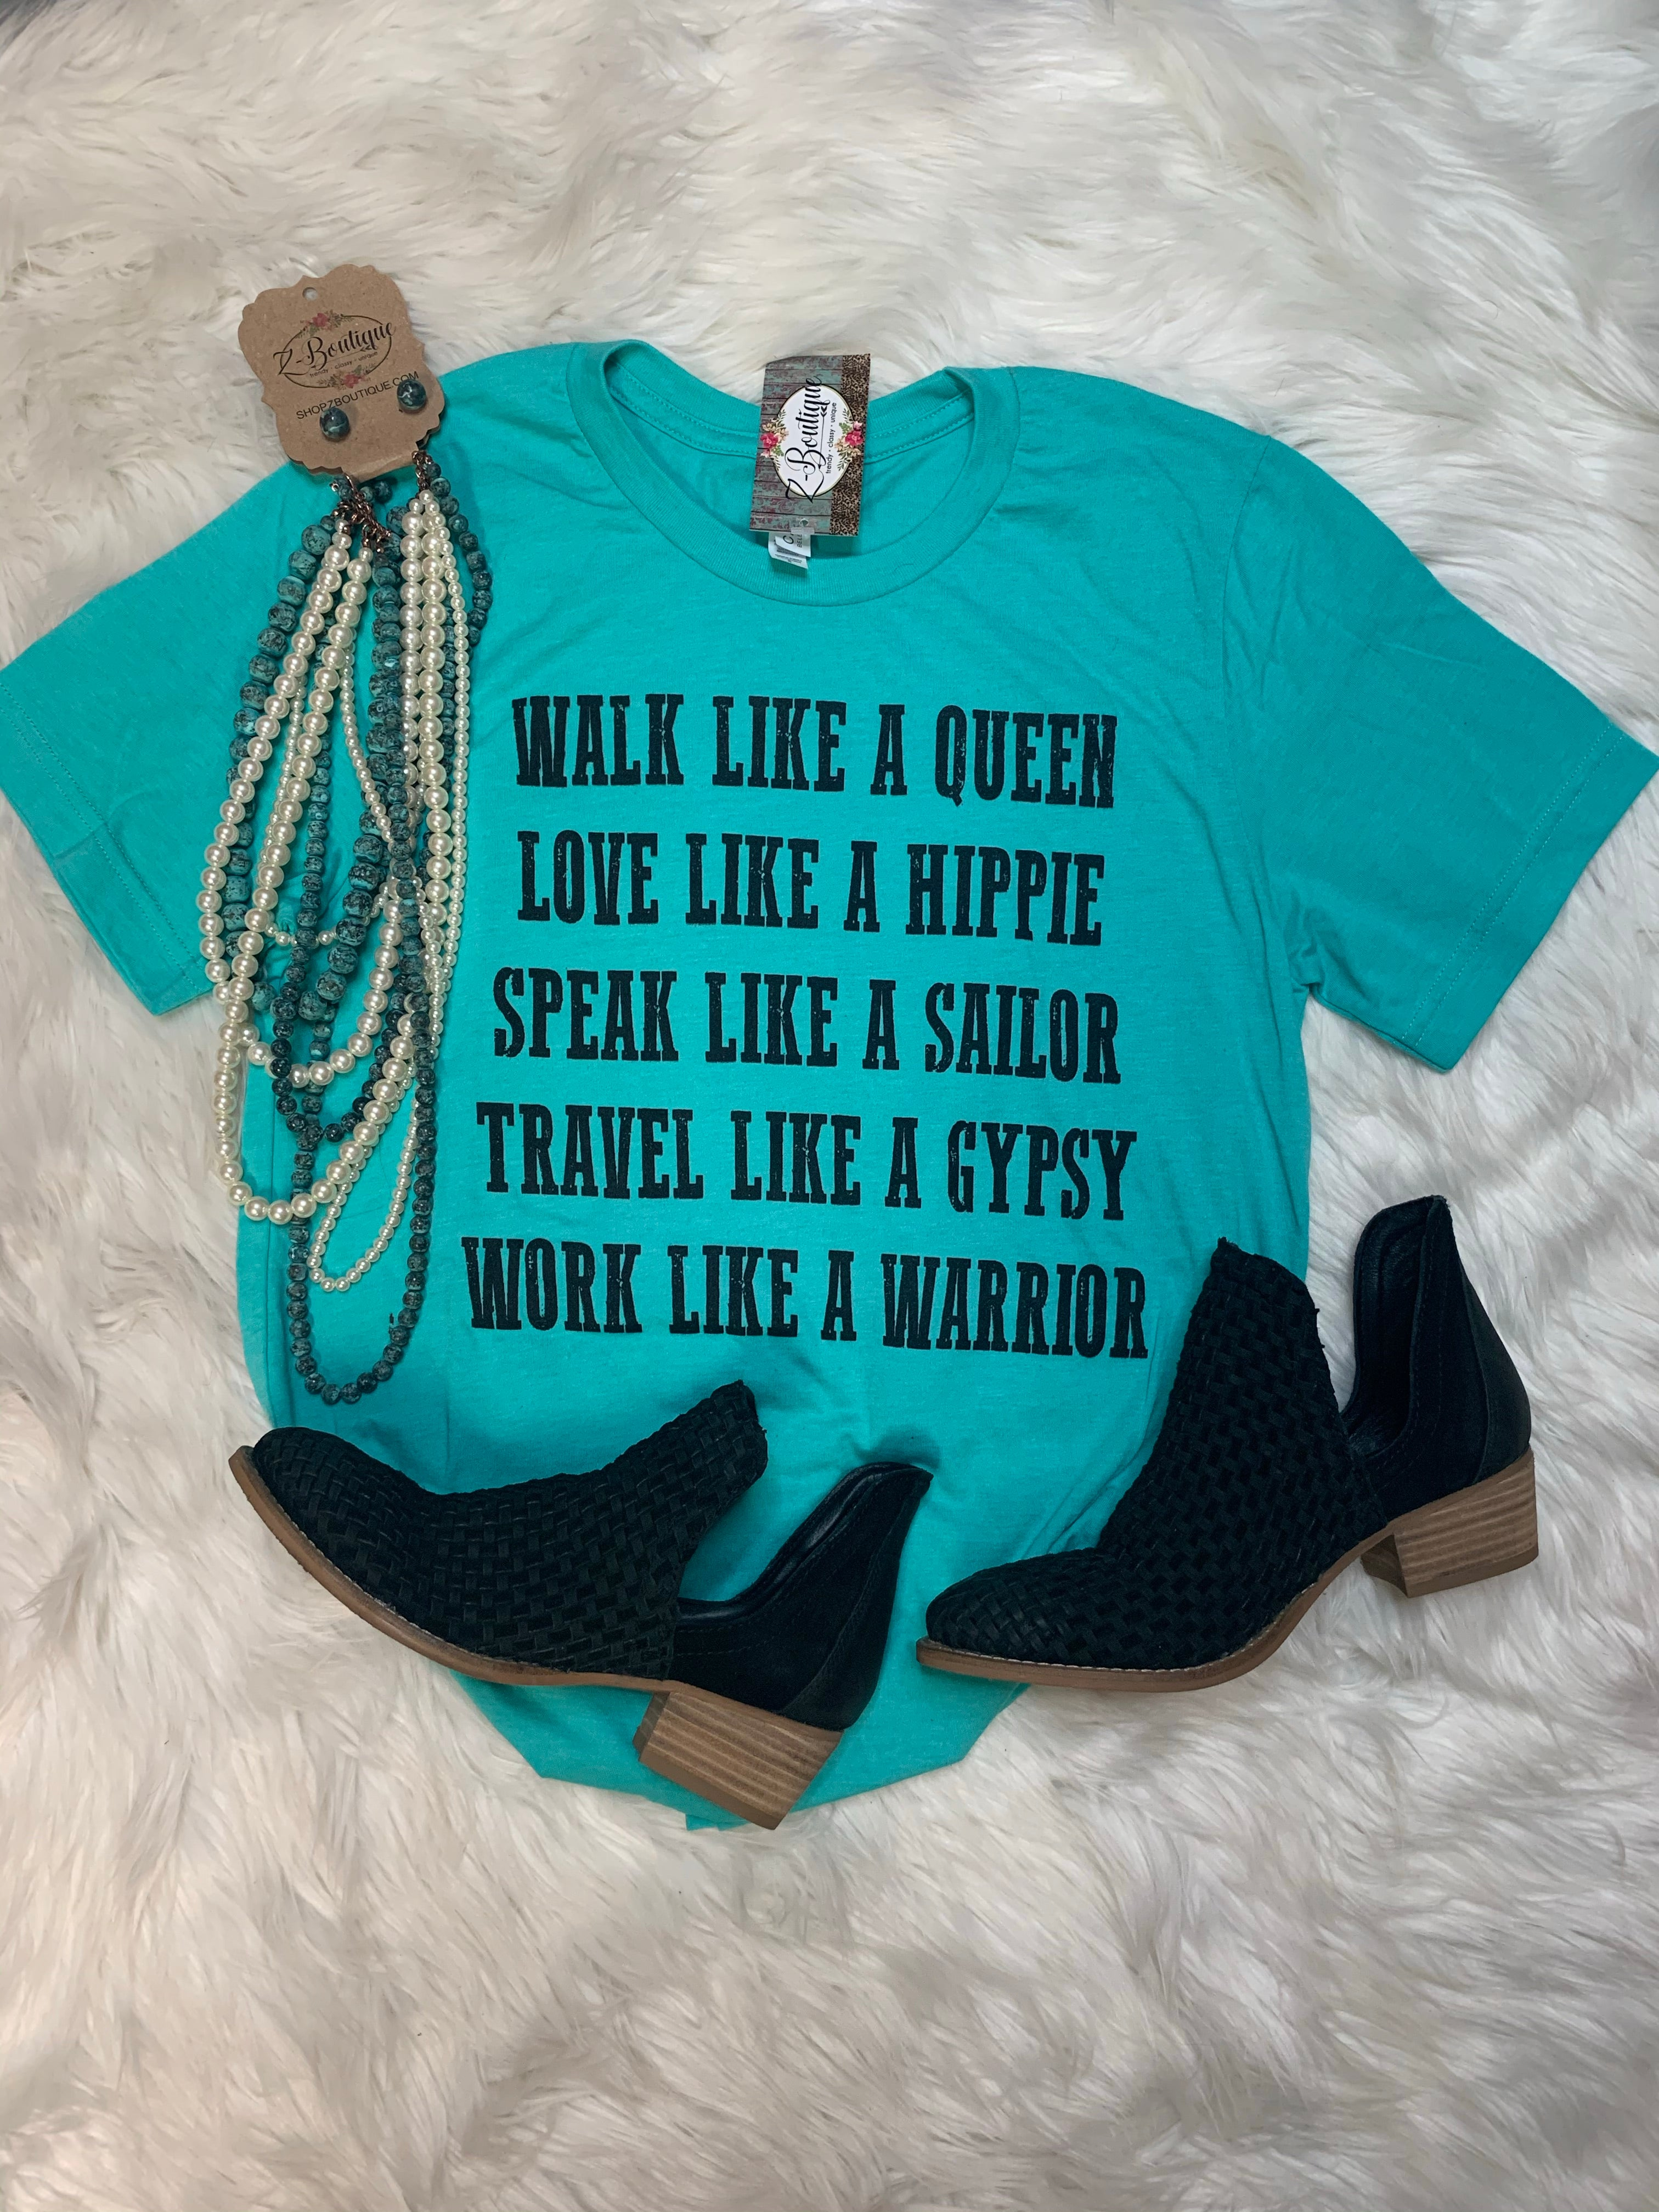 Walk Like a Queen - Teal Graphic Tee